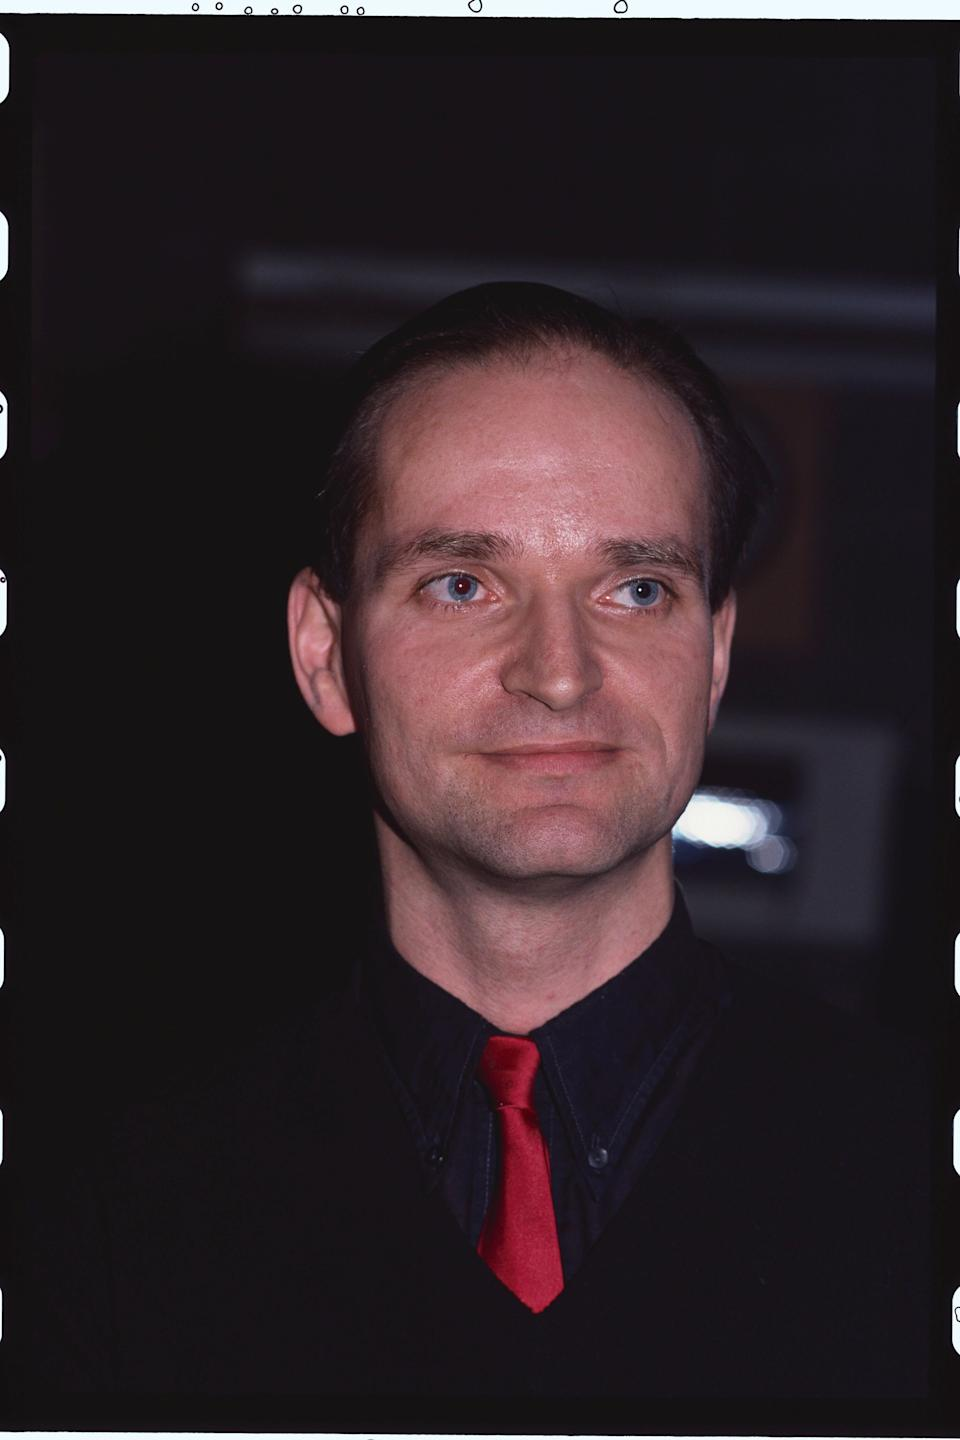 <strong>Florian Schneider (1947 - 2020)<br /><br /></strong>The trailblazing musician was one of the founding members of the electronic group Kraftwerk. He died following a short battle with cancer.